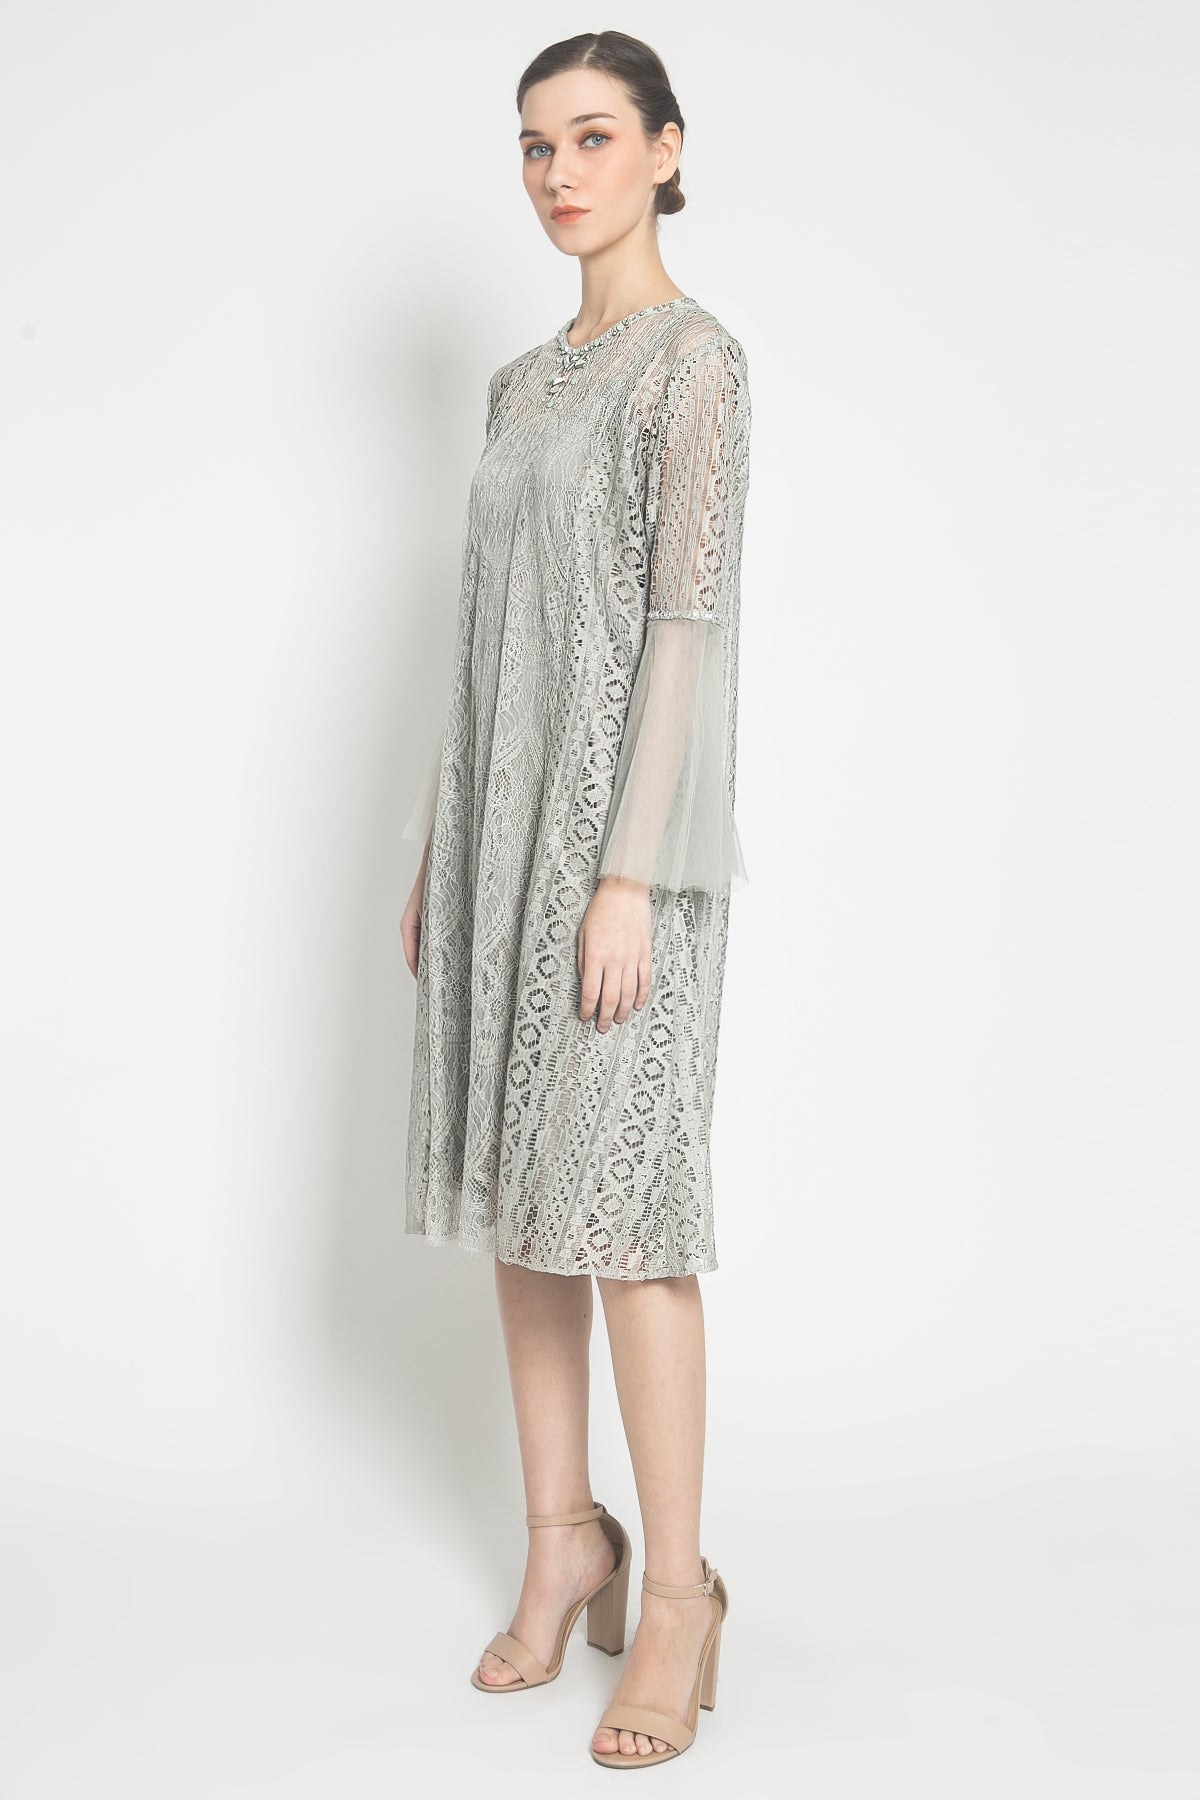 Zirra Dress in Sage